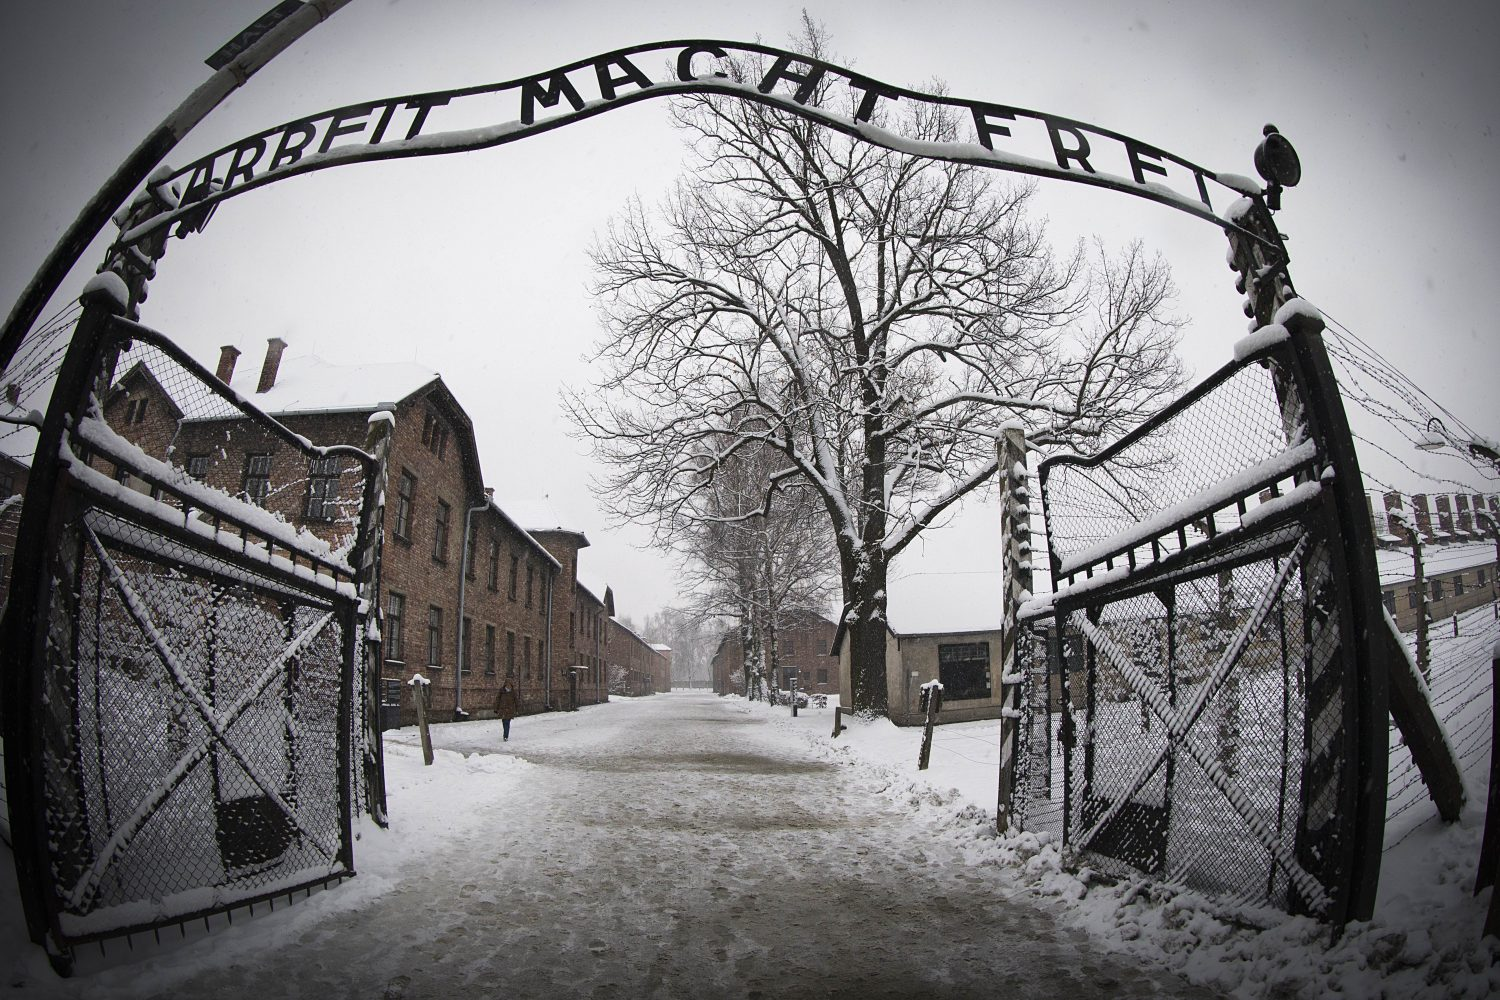 TOPSHOTS A woman walks through snow near the entrance to the former Nazi concentration camp Auschwitz-Birkenau with the lettering 'Arbeit macht frei' ('Work makes you free') in Oswiecim, Poland on January 25, 2015, days before the 70th anniversary of the liberation of the camp by Russian forces. AFP PHOTO / JOEL SAGET